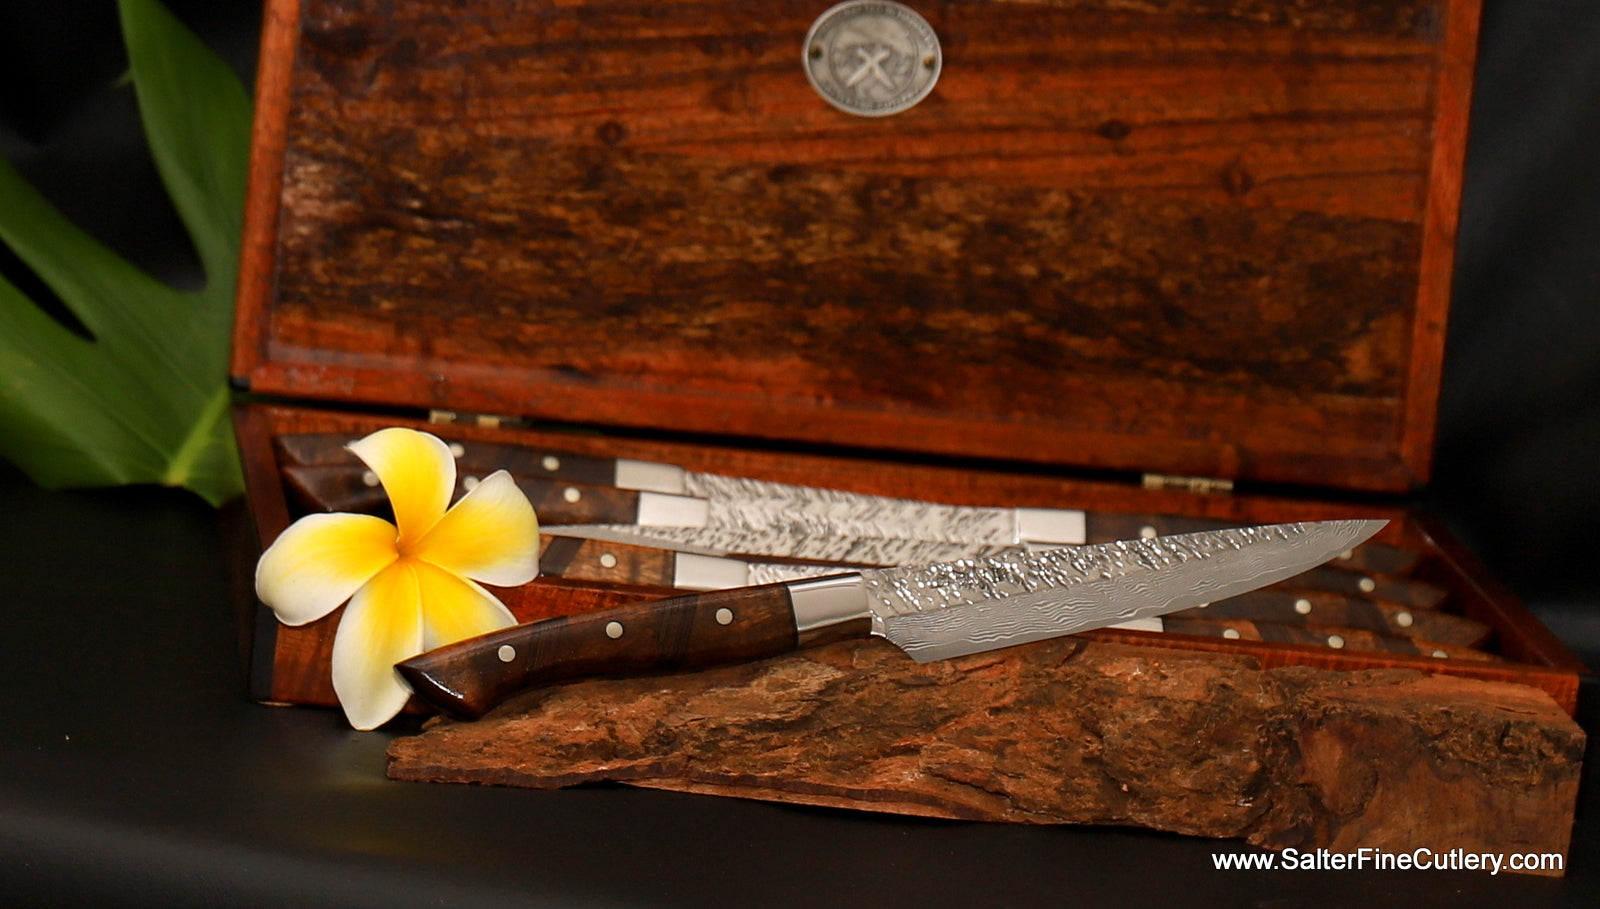 New Raptor design luxury steak knives for outdoor living or fine dining by Salter Fine Cutlery of Hawaii